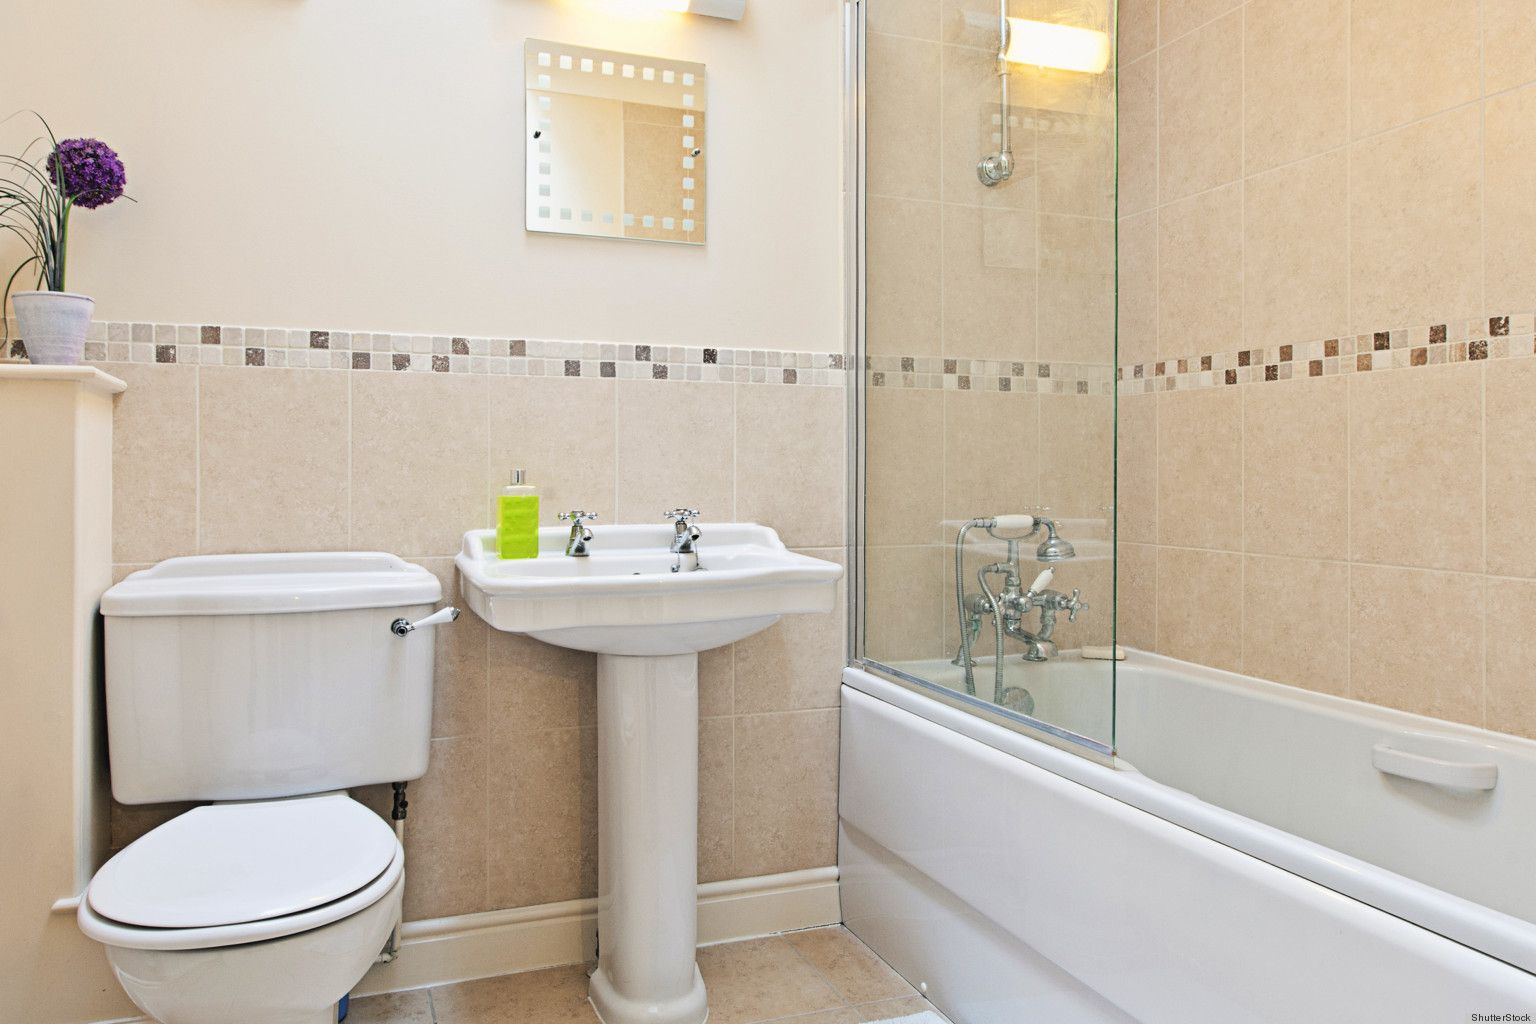 The Best Ways To Spring Clean Your Bathroom Cleaning